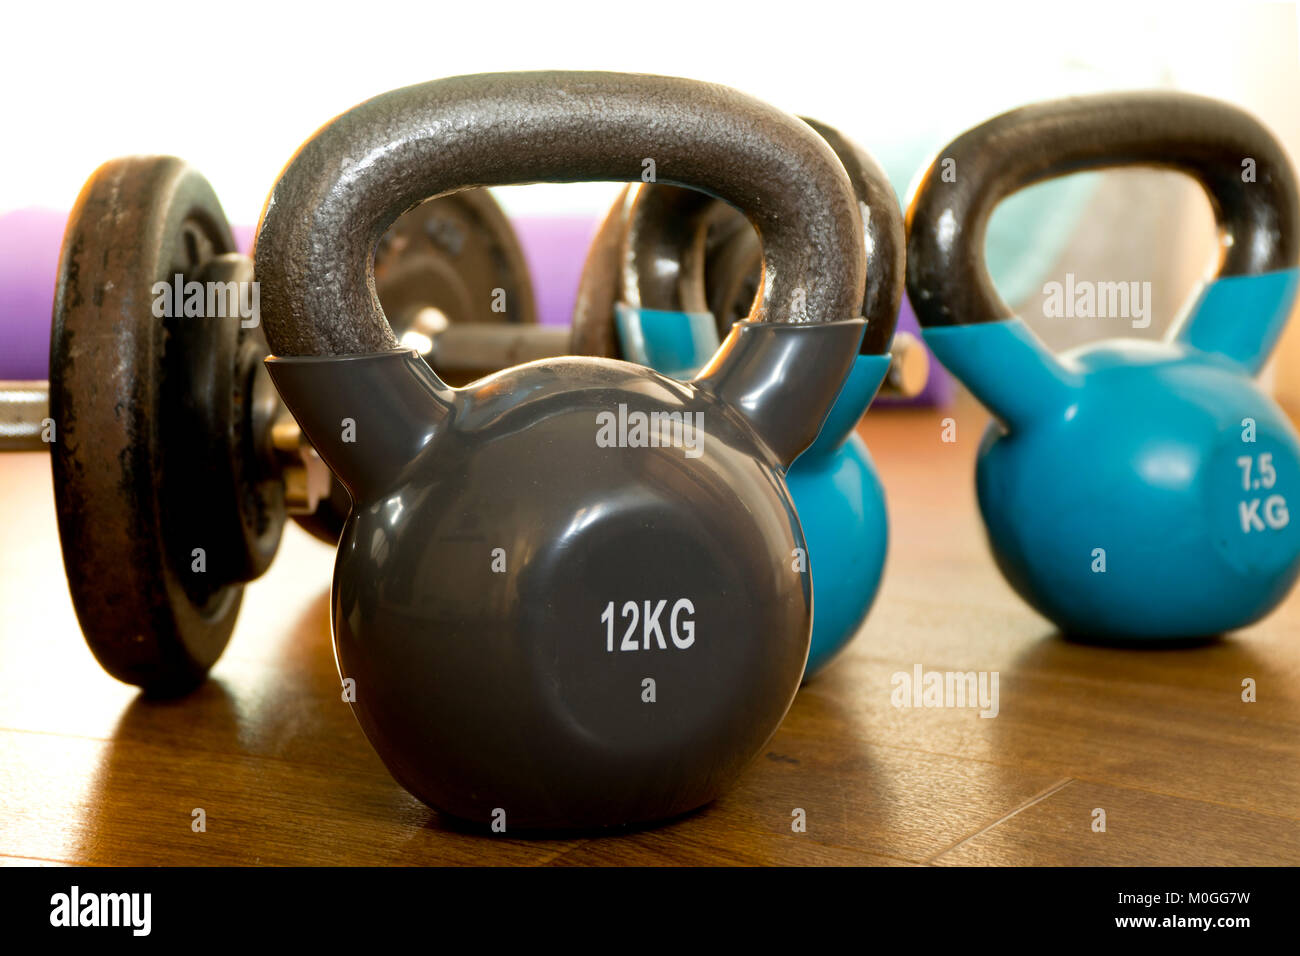 Kettlebells and dumbbells on a wooden floor - Stock Image